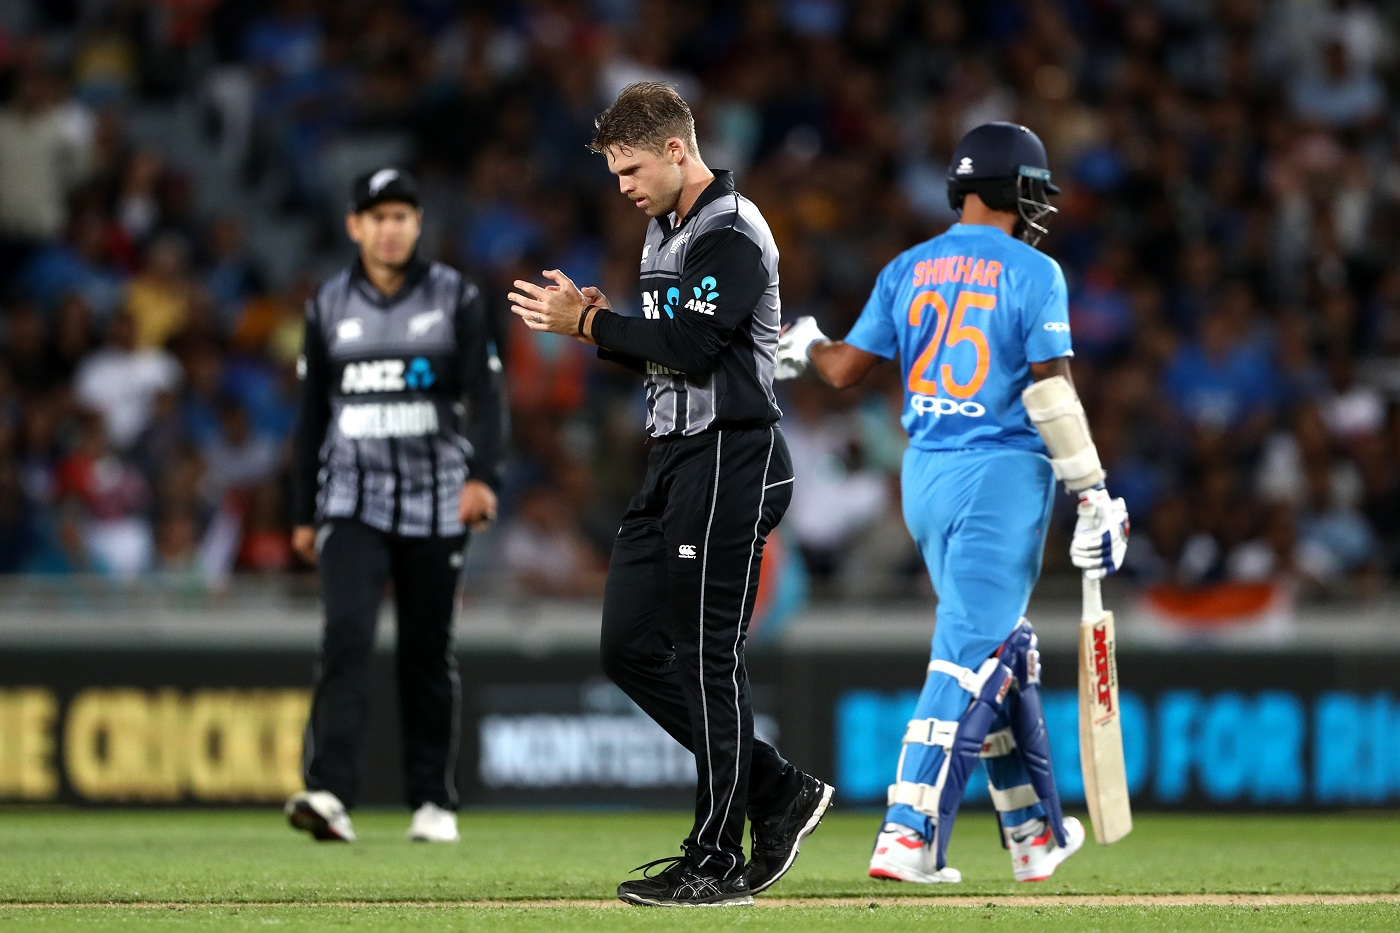 India vs new zealand 2nd T20 Highlights